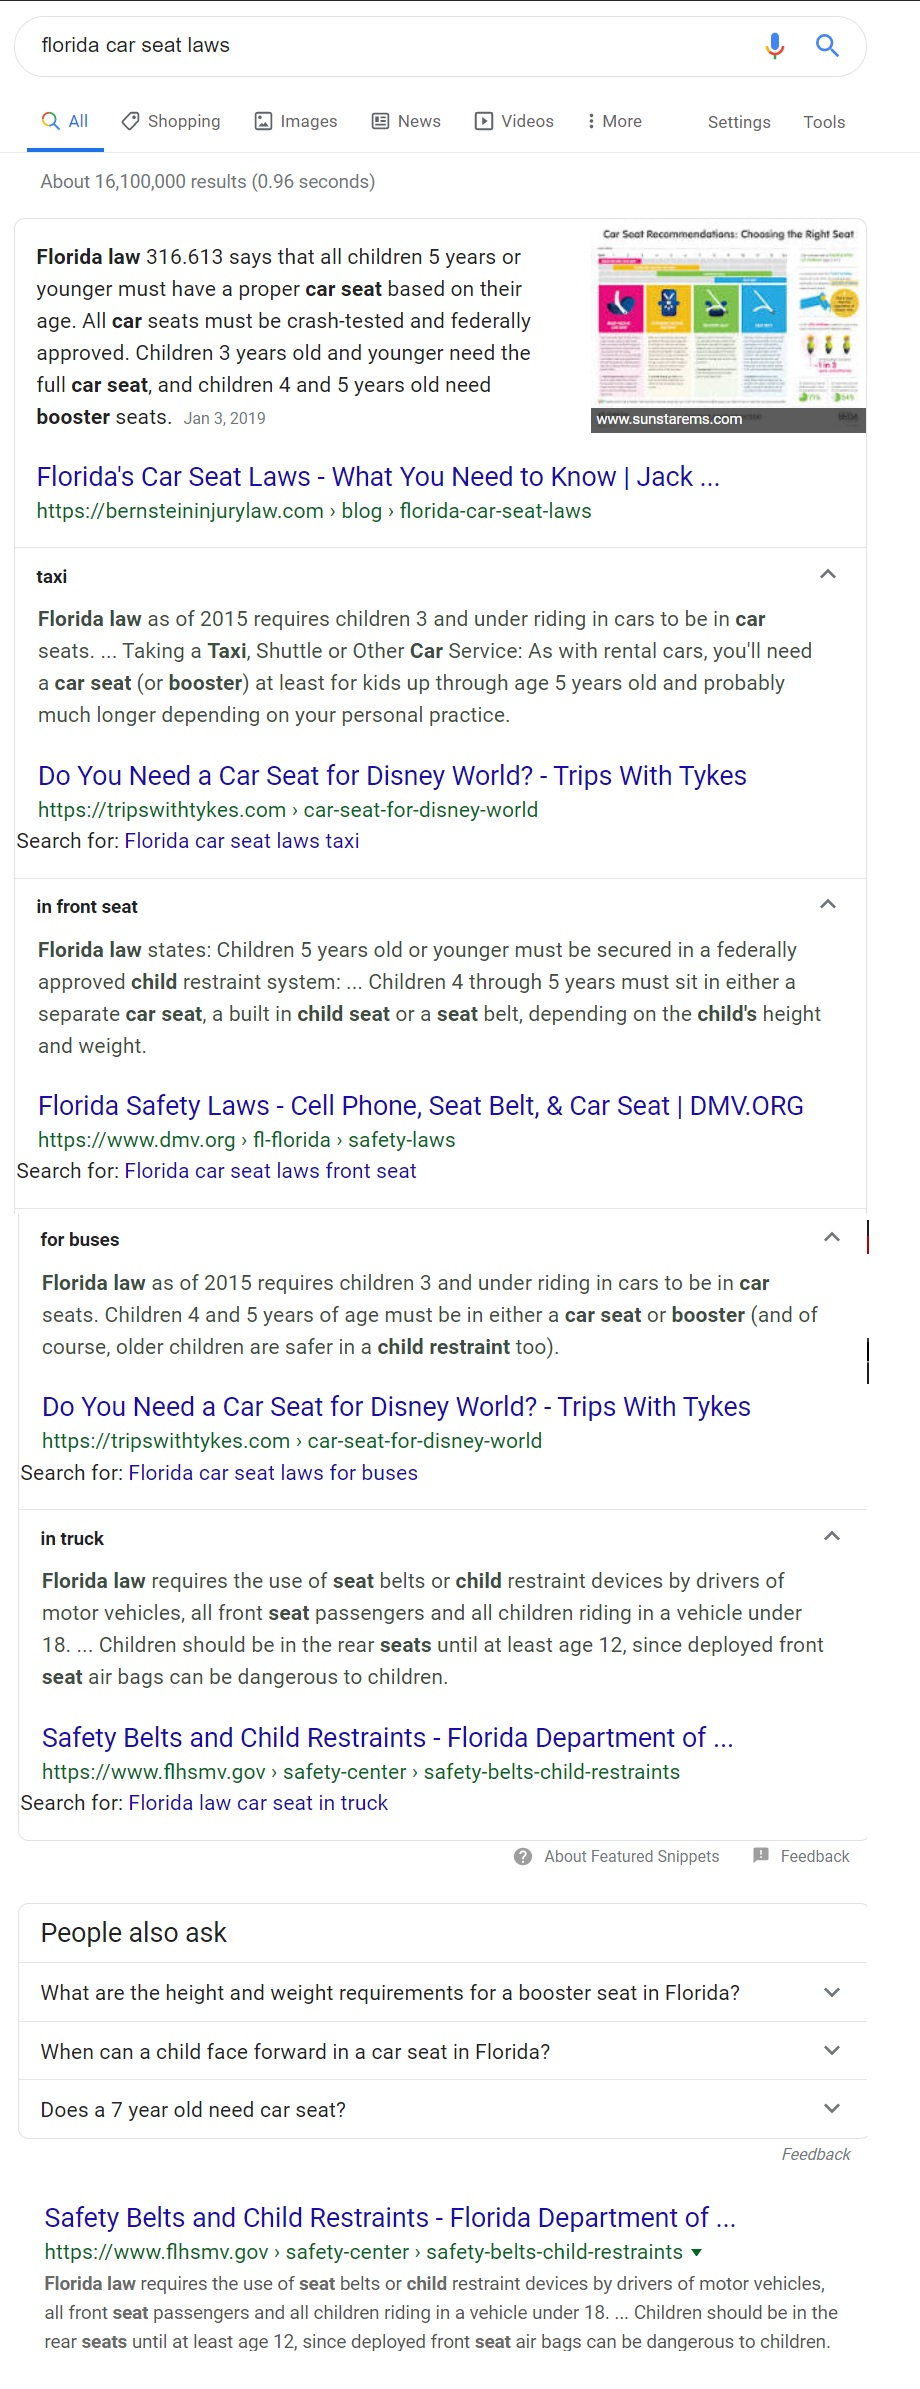 screenshot of an expanded multi featured snippet